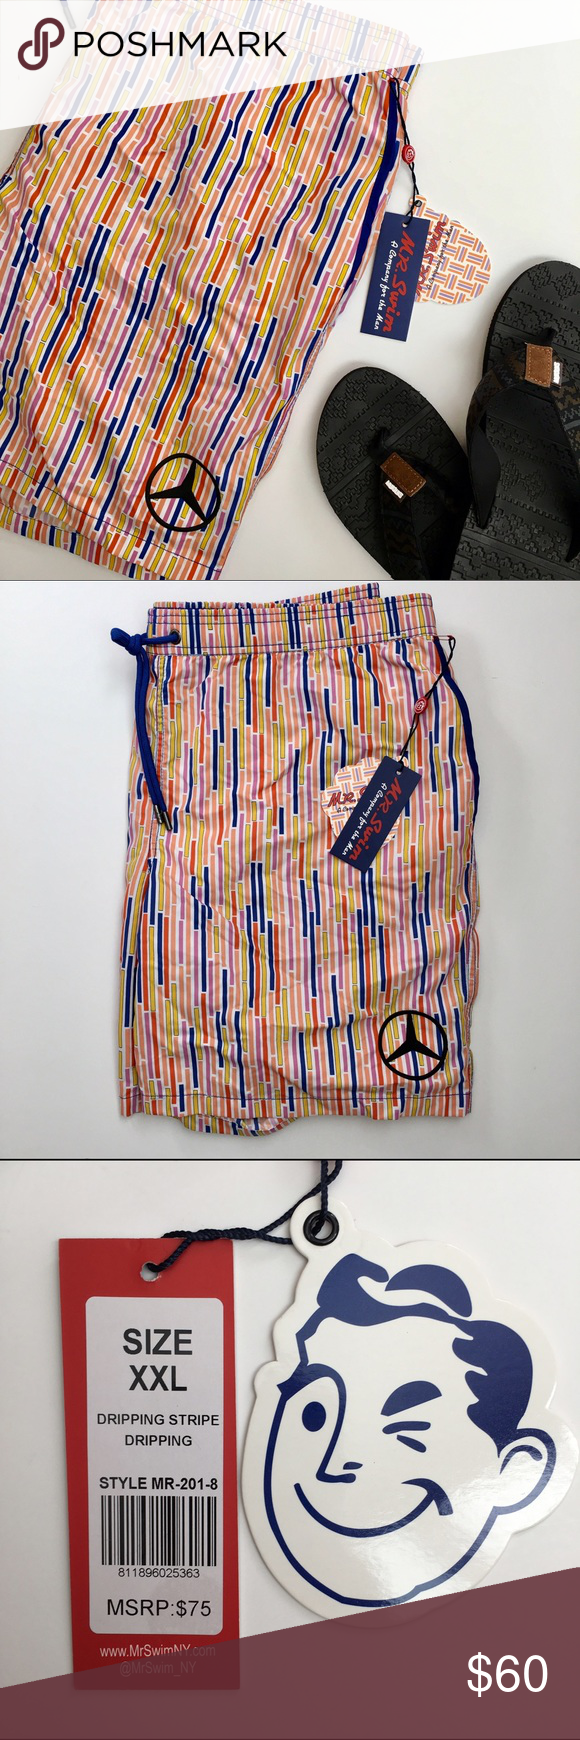 7460823d41 Mr. Swim MERCEDES BENZ Men's Swim Shorts/Trunks Hit the beach in retro  fashion